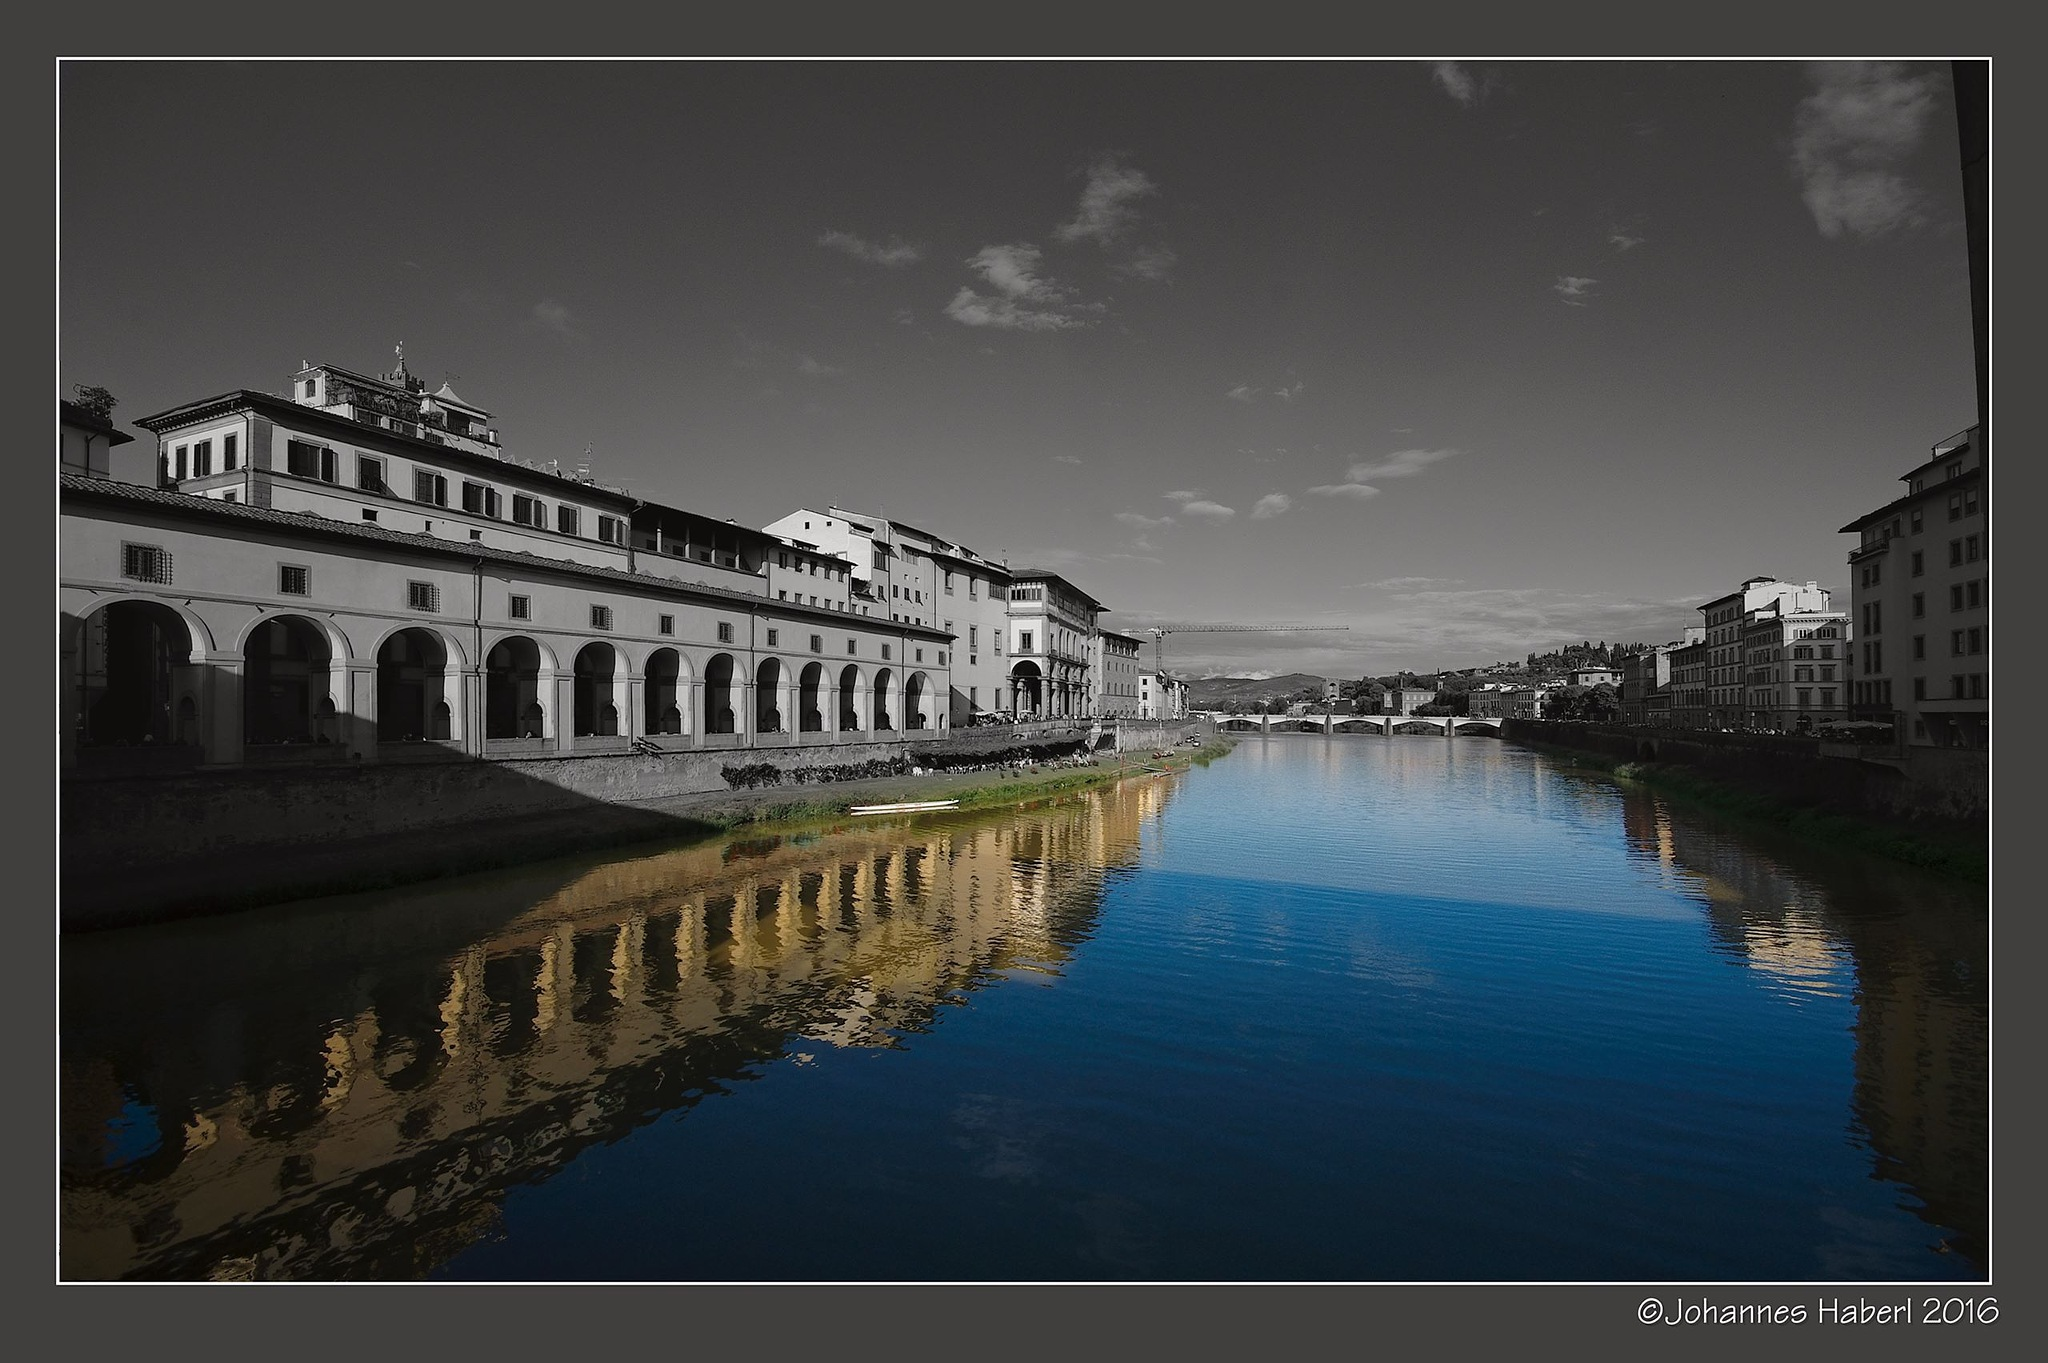 Arno - beautiful river - schöner Fluss / BW+C by Johannes Haberl